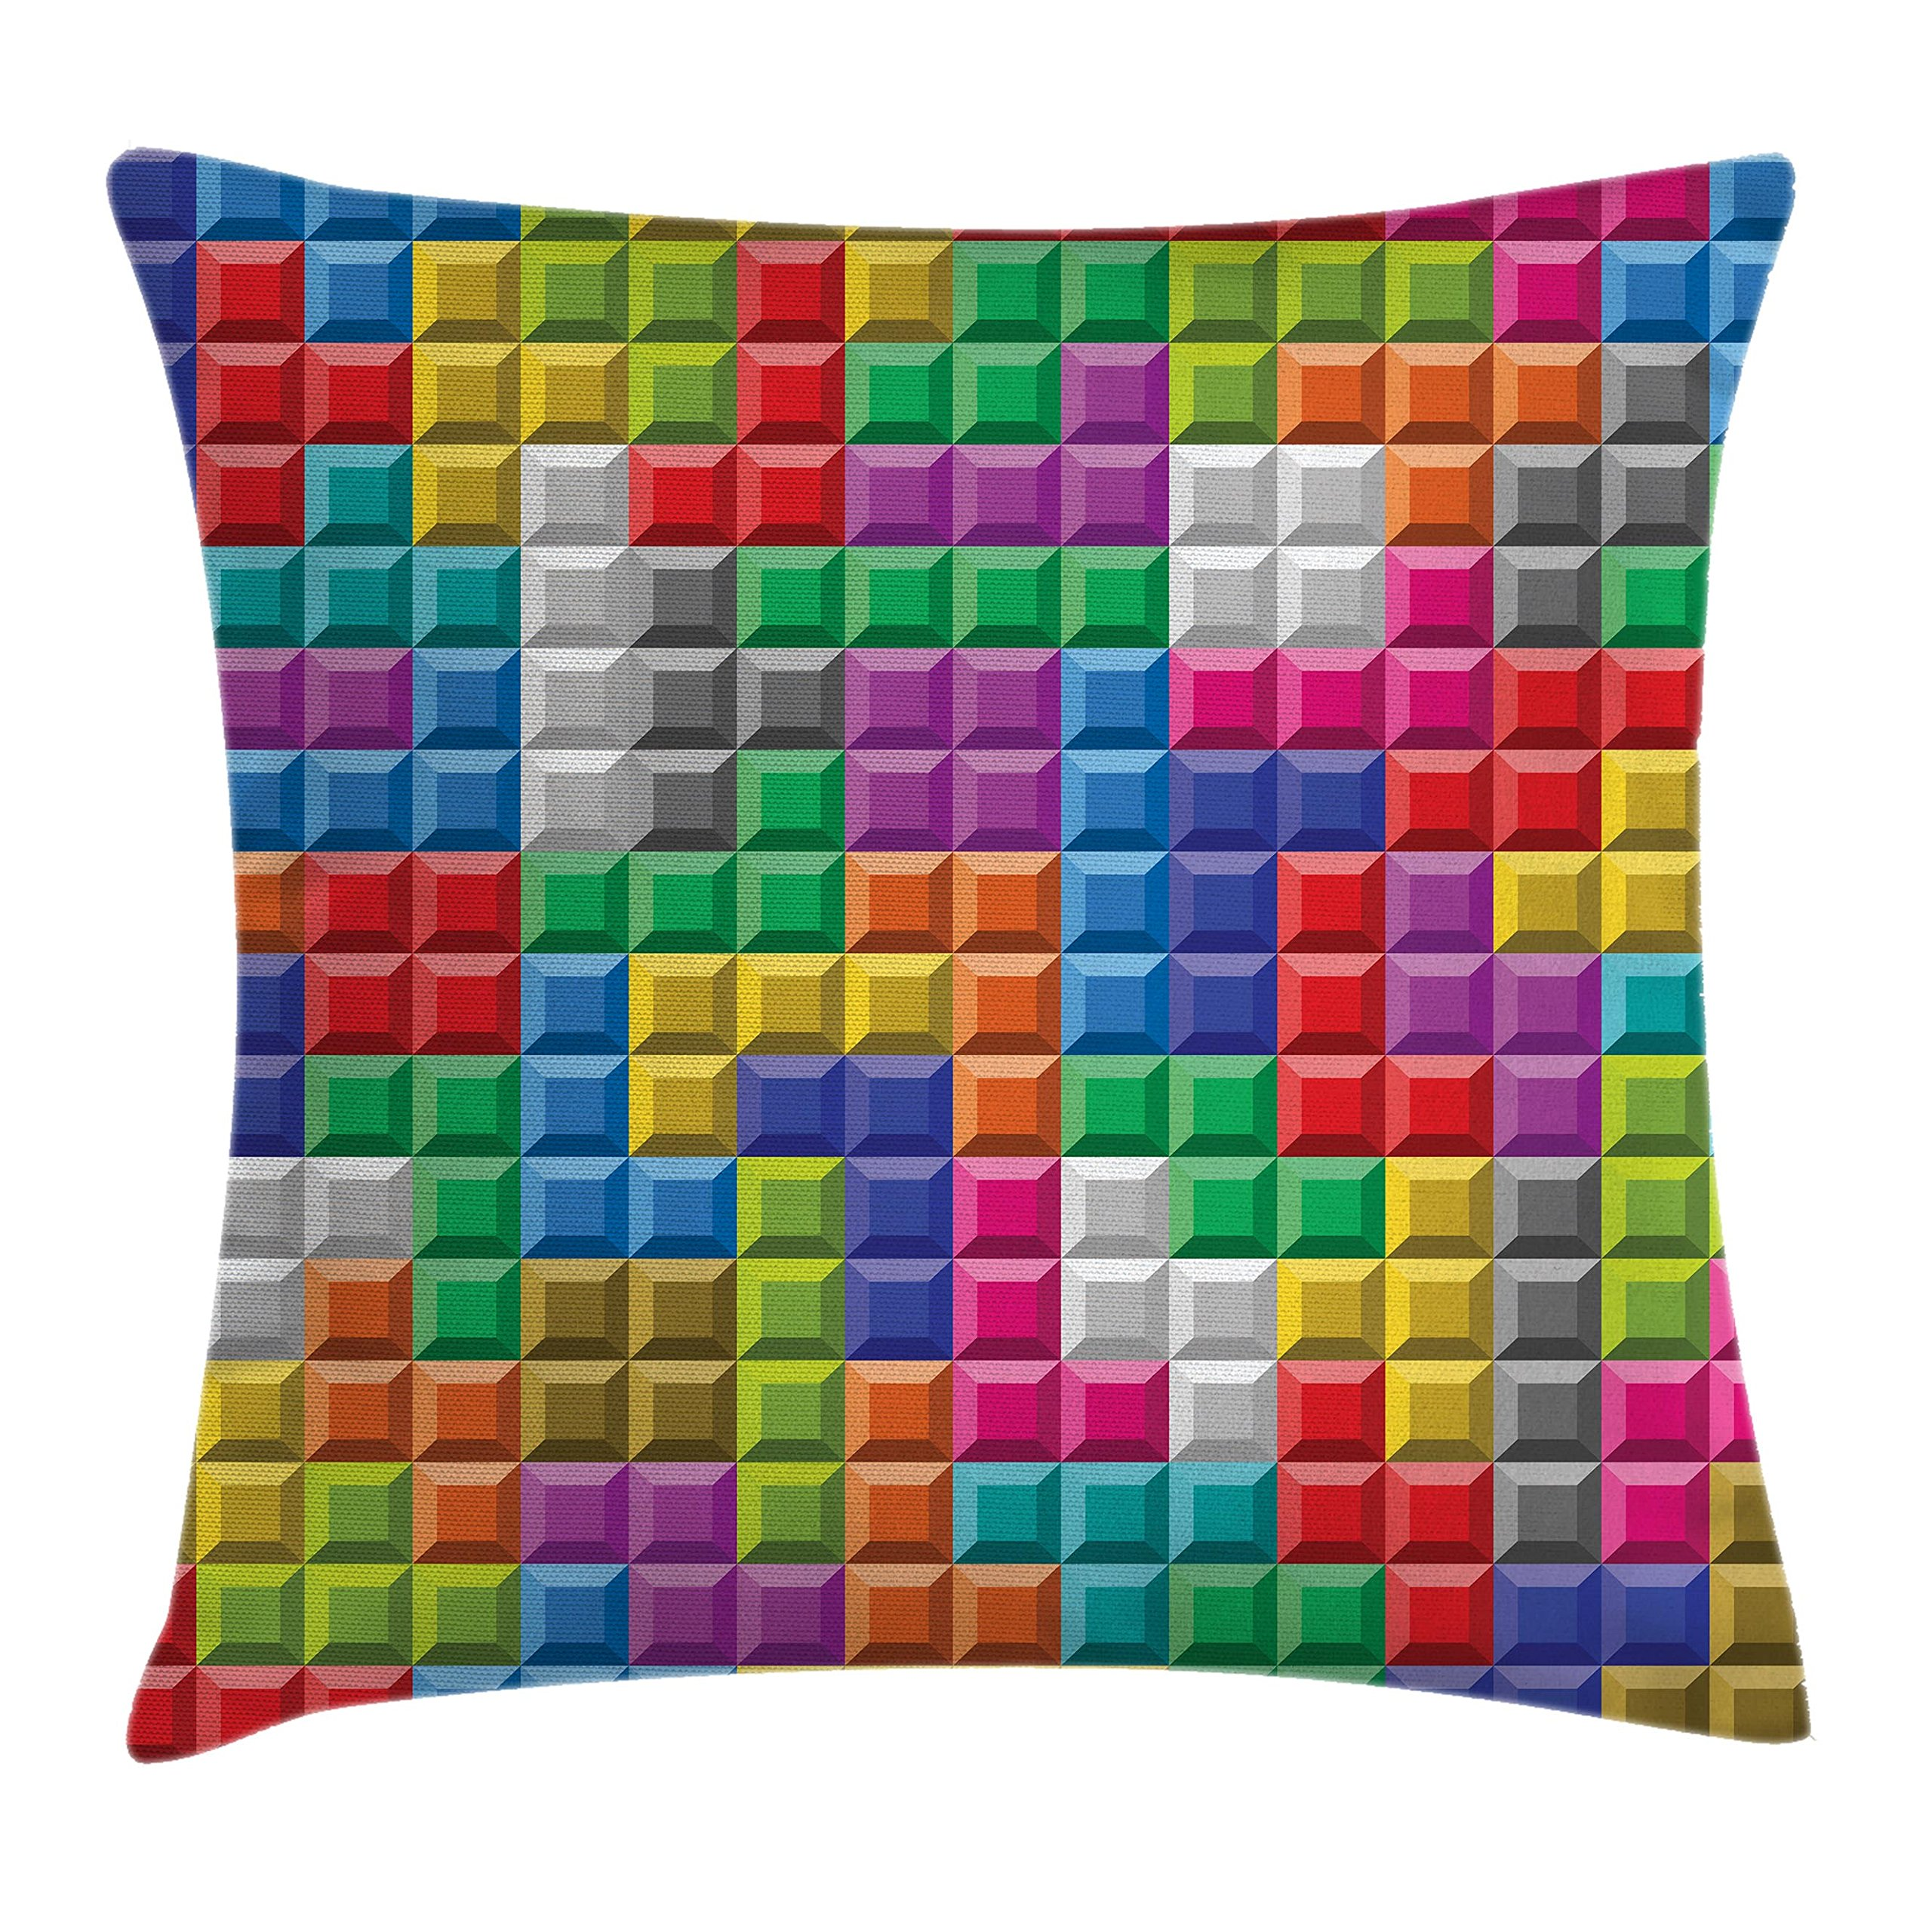 Ambesonne Video Games Throw Pillow Cushion Cover, Colorful Retro Gaming Computer Brick Blocks Image Puzzle Digital 90's Play, Decorative Square Accent Pillow Case, 18 X 18 Inches, Multicolor